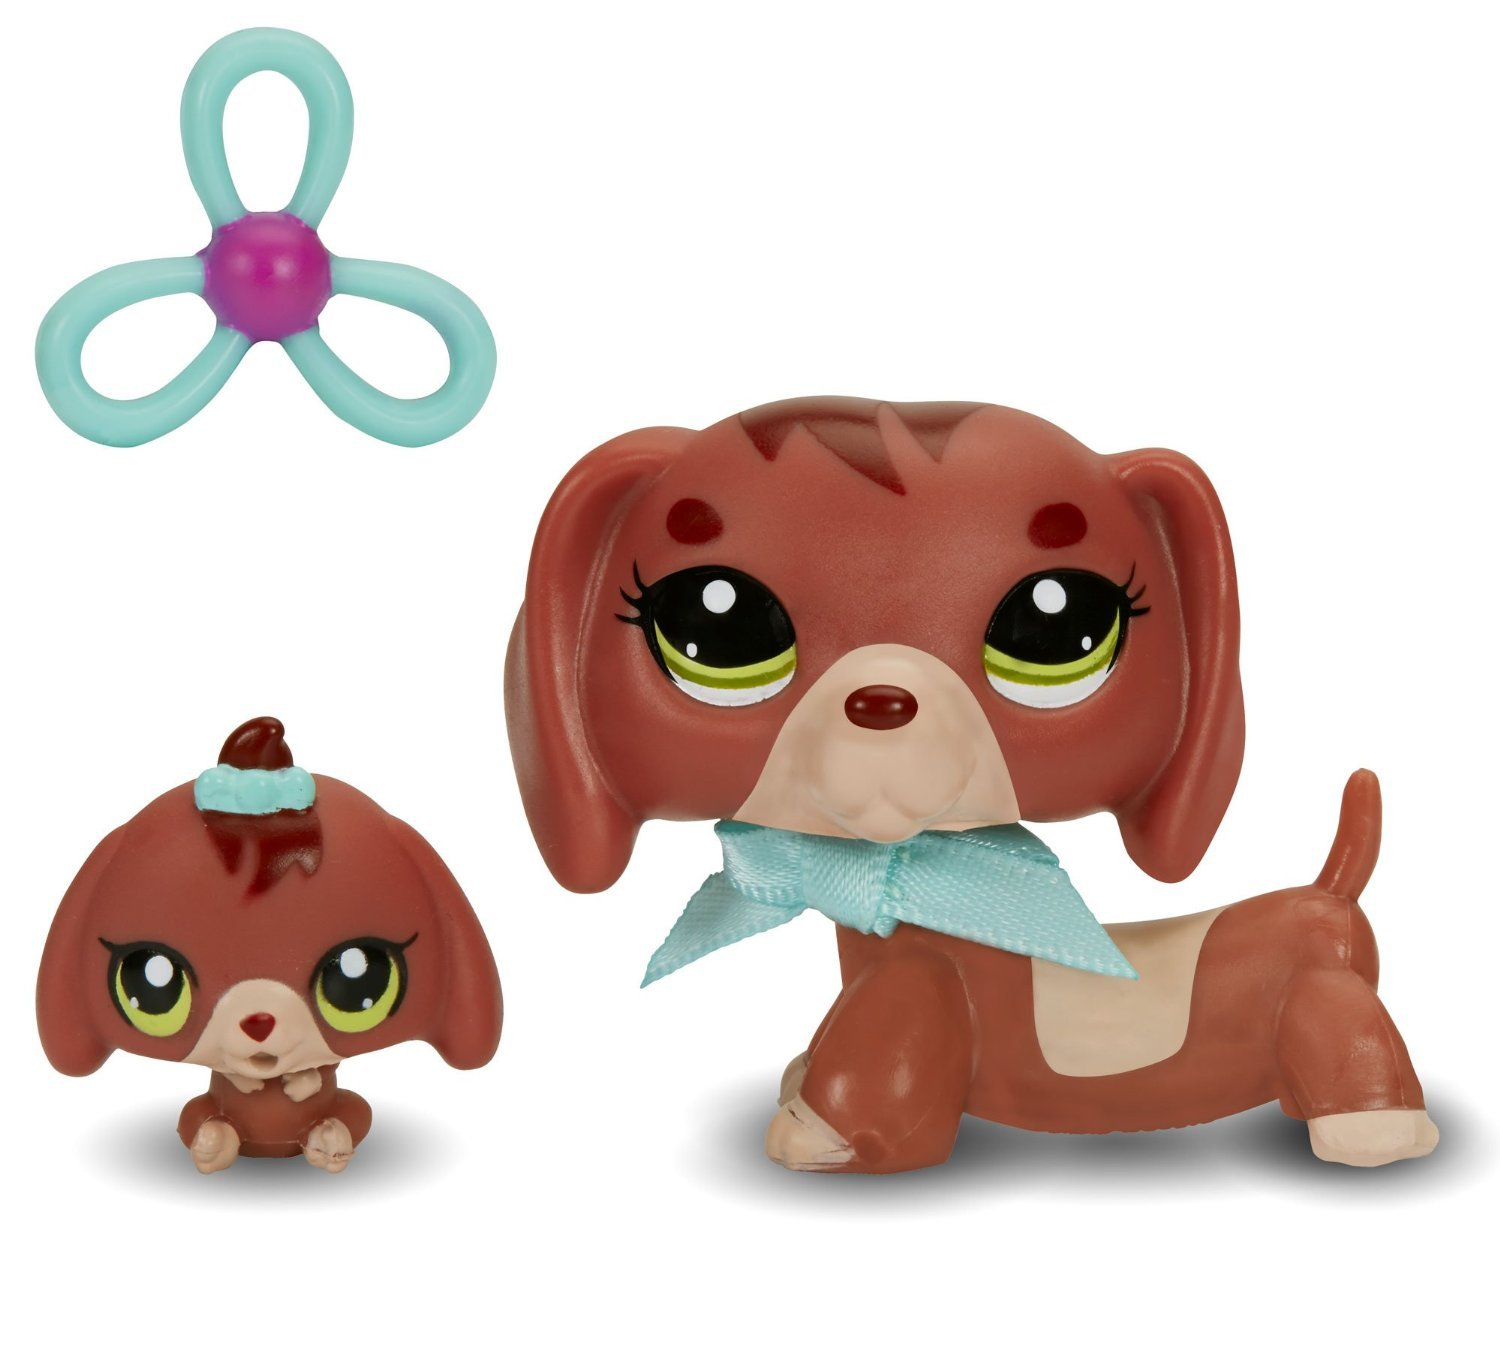 Amazon Littlest Pet Shop Figures Dachshund and Baby Dachshund